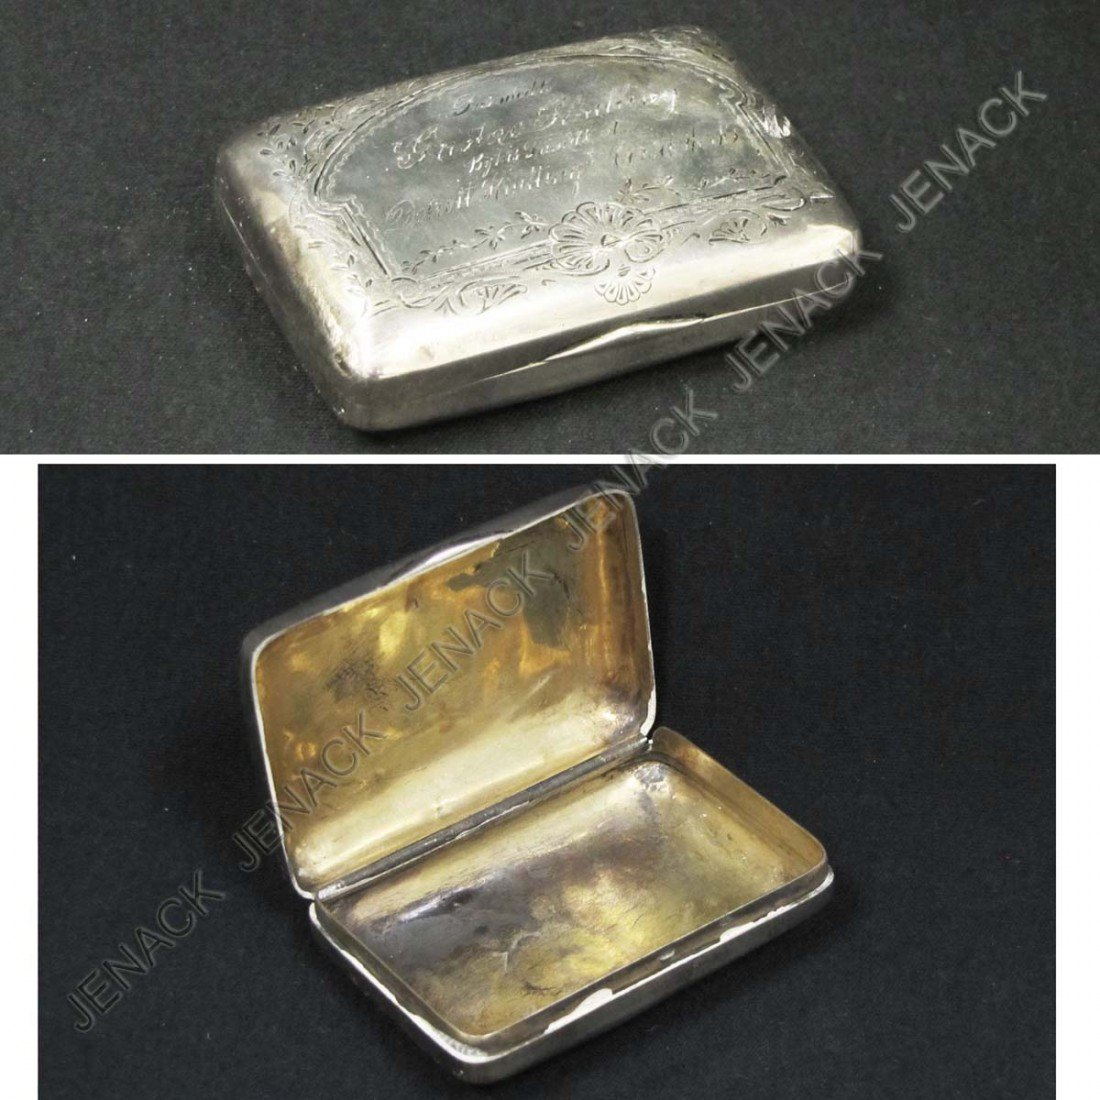 22: WHITING VINTAGE STERLING SILVER SNUFF BOX